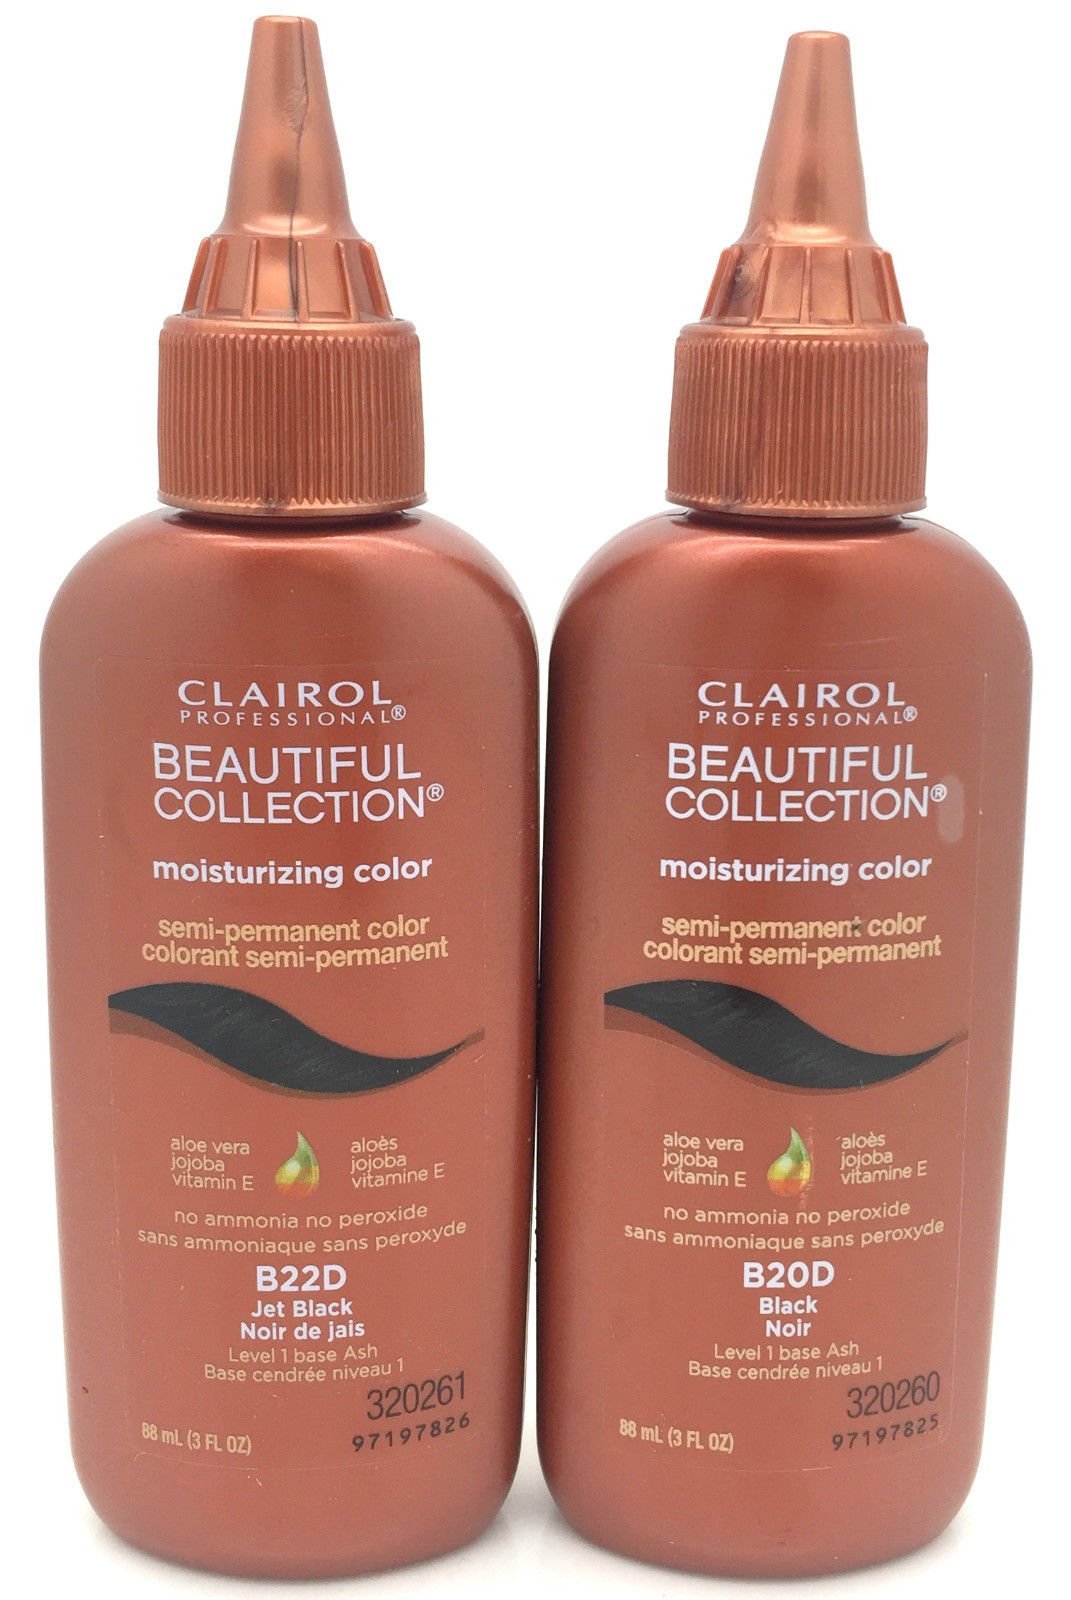 Clairol Beautiful Collection Semi Permanent Black Hair Dye